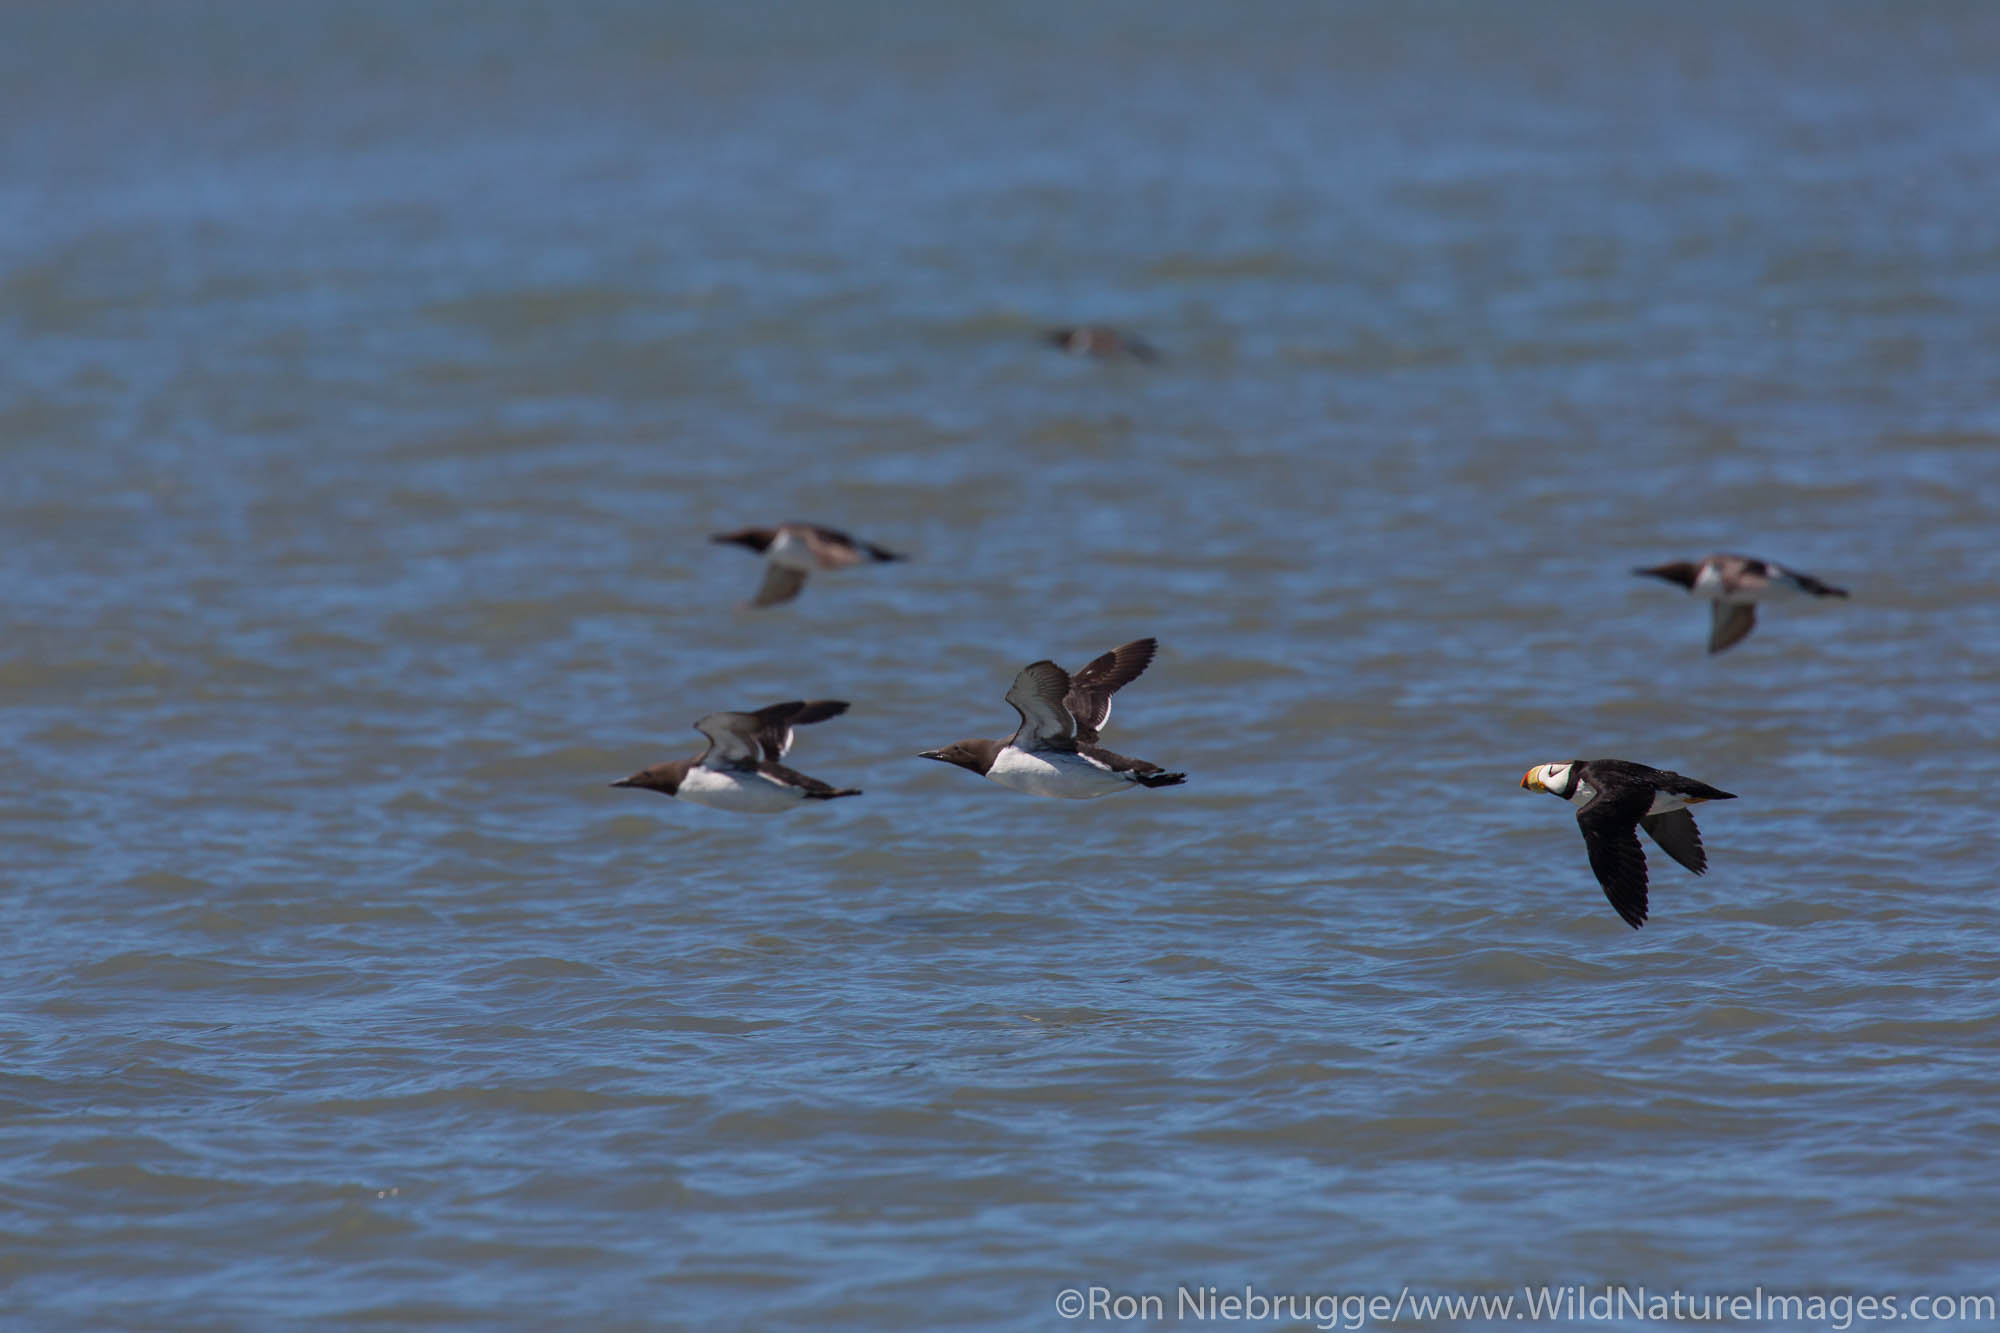 Murres and Horned Puffin in flight, Lake Clark National Park, Alaska.